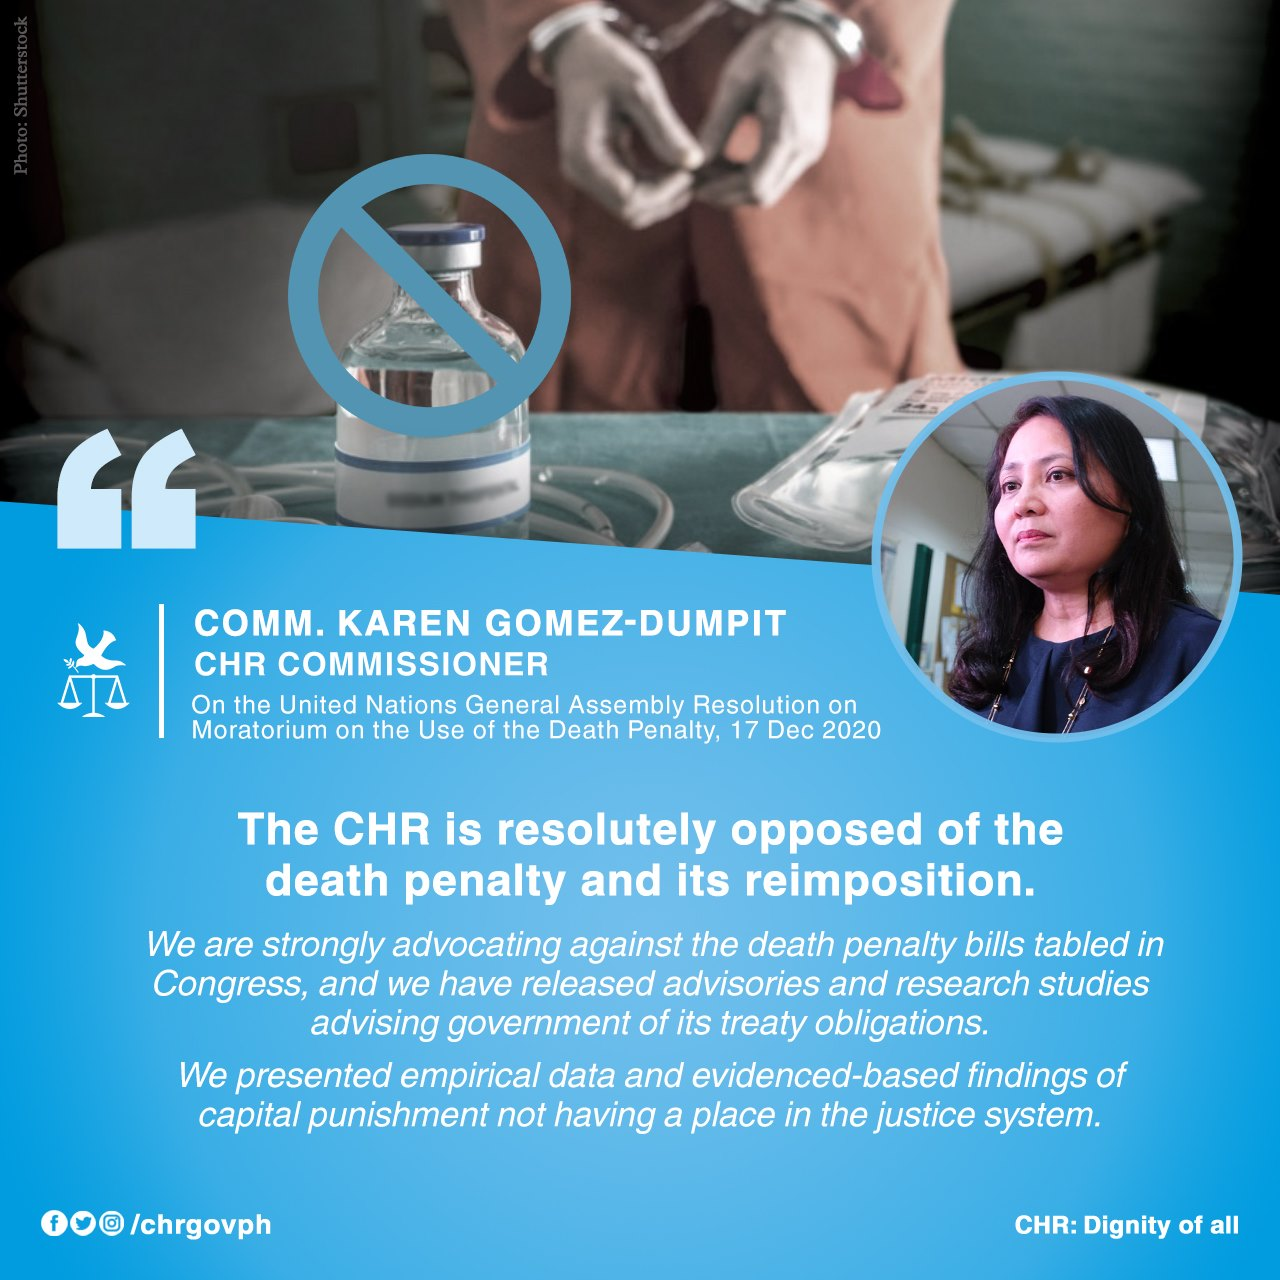 Statement of Commissioner Karen Gomez-Dumpit on the United Nations General Assembly Resolution on Moratorium on the Use of the Death Penalty